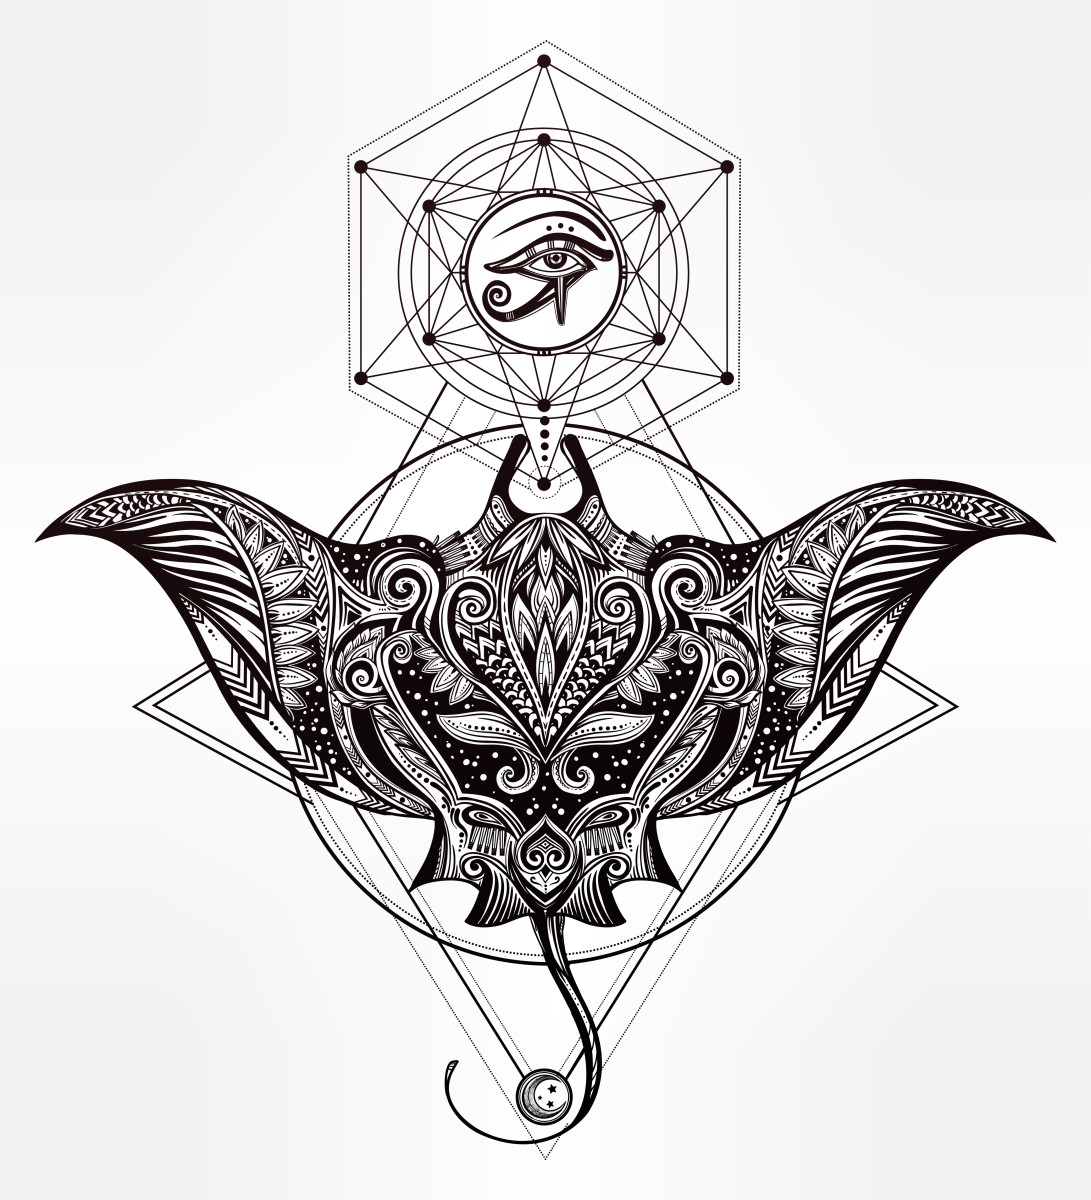 stingray-tattoos-and-designs-stingray-tattoo-meanings-tribal-stingray-tattoos-and-meanings